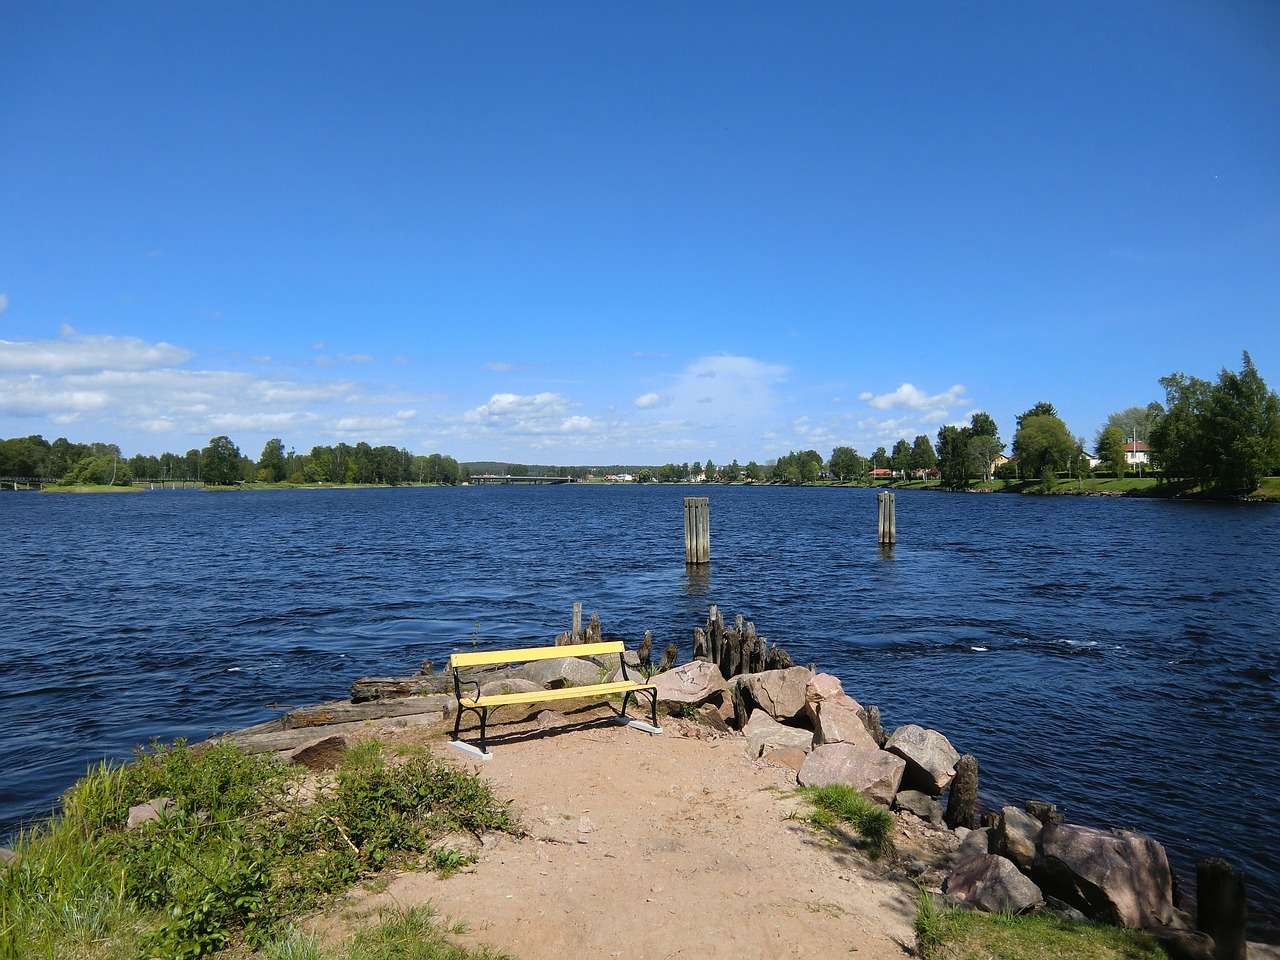 karlstad sweden lake free photo